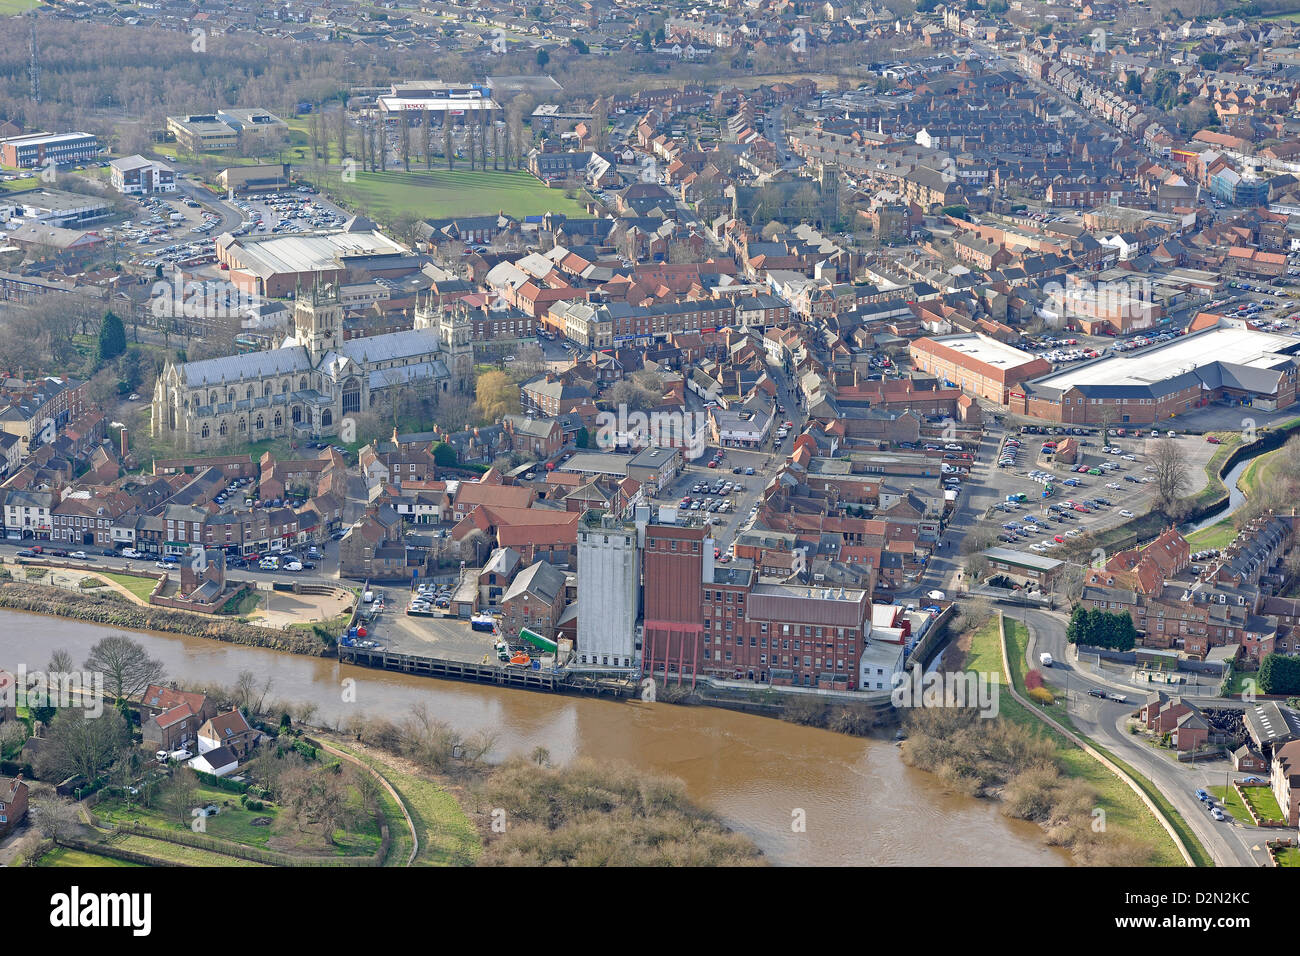 Aerial photograph of Selby - Stock Image